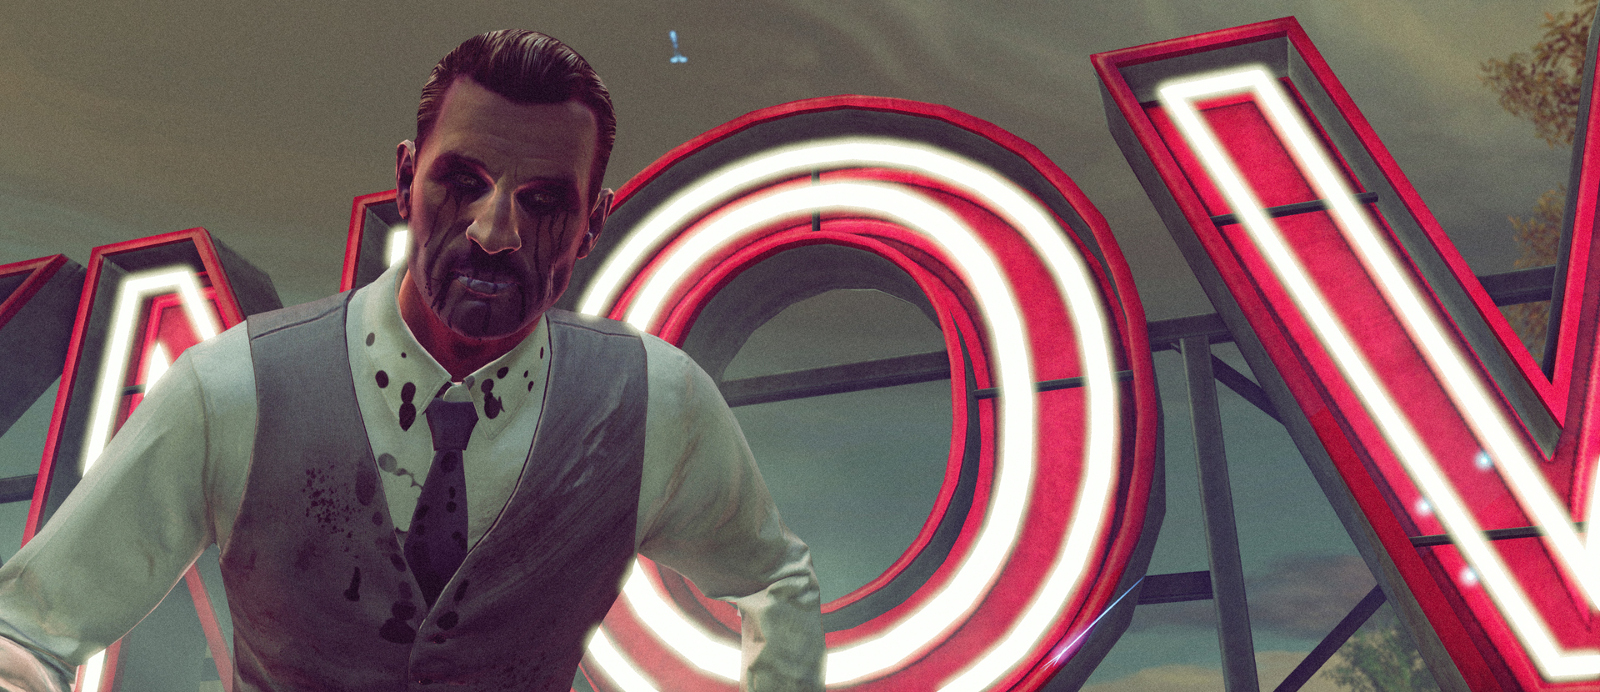 The bureau xcom declassified 5 things you should know for Bureau xcom declassified weapons